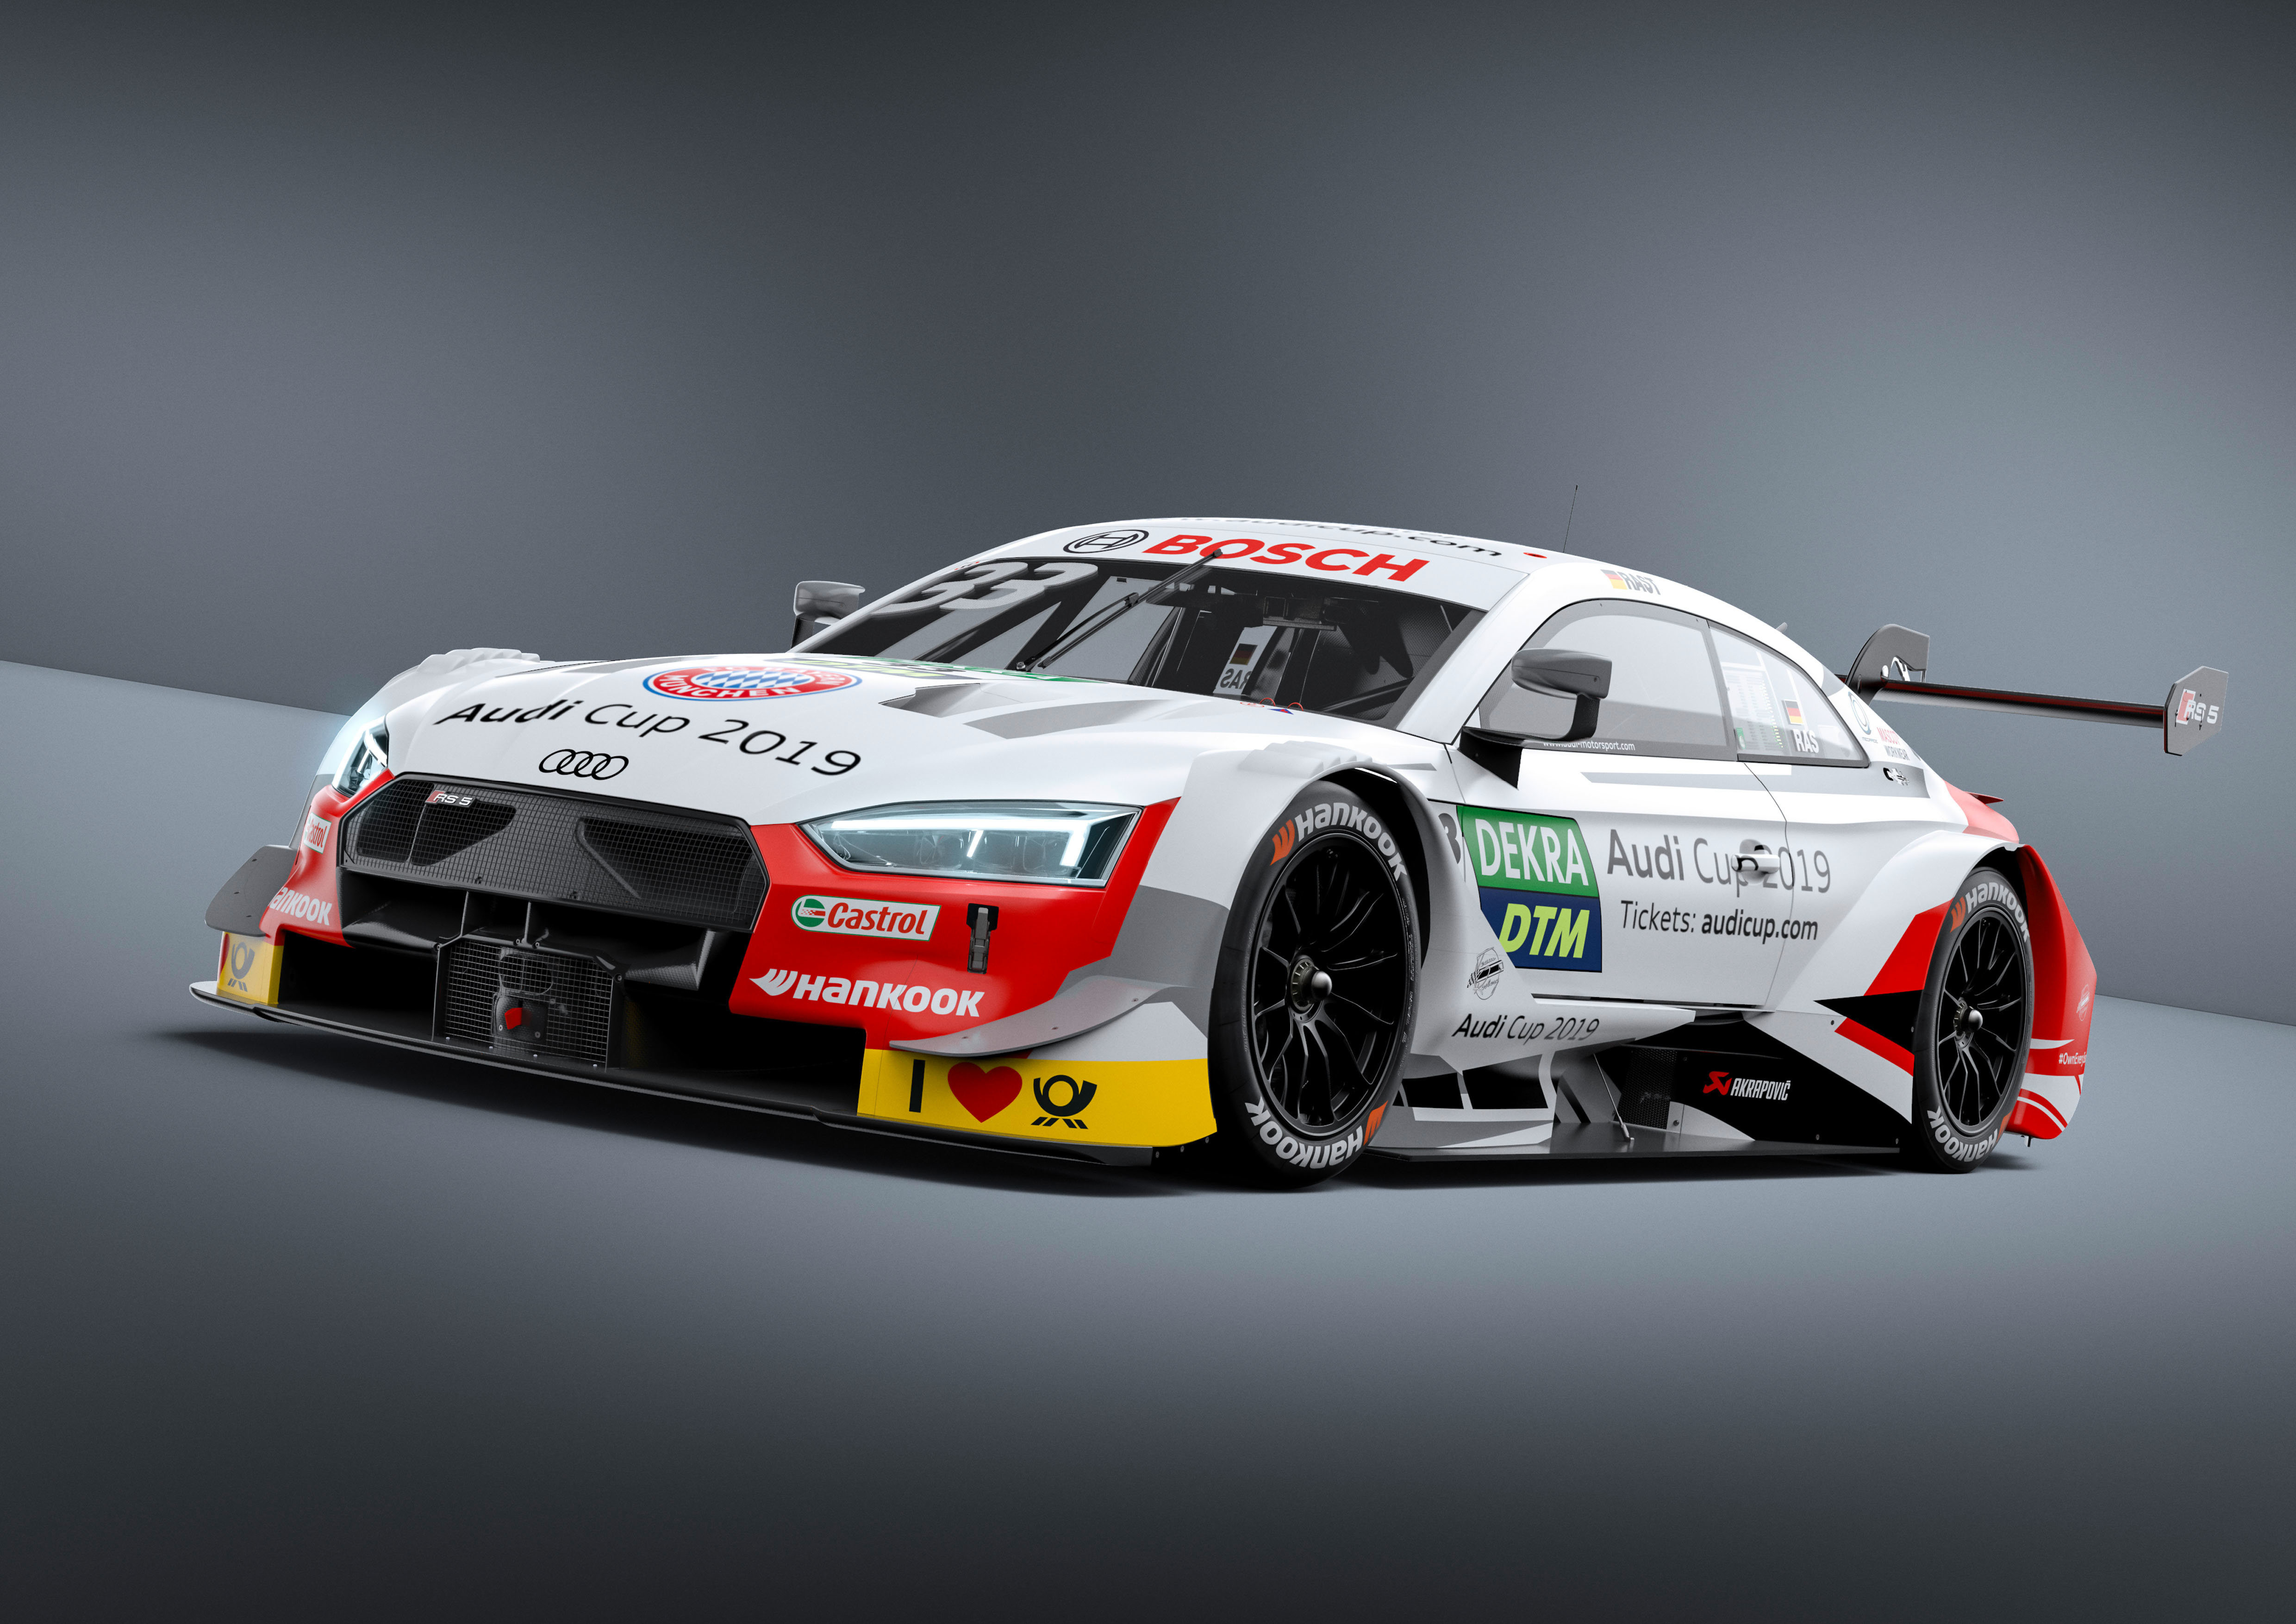 Street Race Cars >> Audi Dtm Class 1 Race Car To Make City Street Circuit Debut